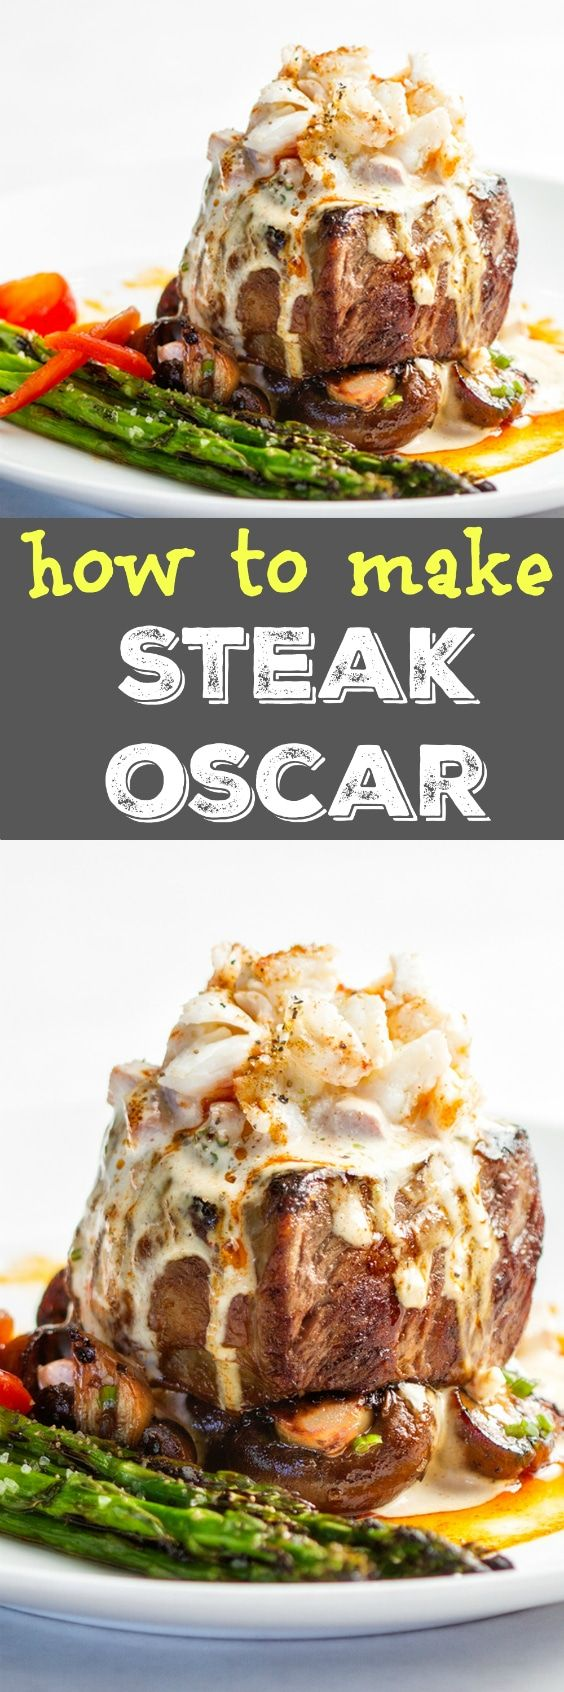 Easy but absolutely decadent Steak Oscar recipe! This is sure to make dinner time a special one for the whole family! While traditional Steak Oscar calls for Bernaise, my trick of topping with blender Hollandise makes this the easiest fancy dish ever!